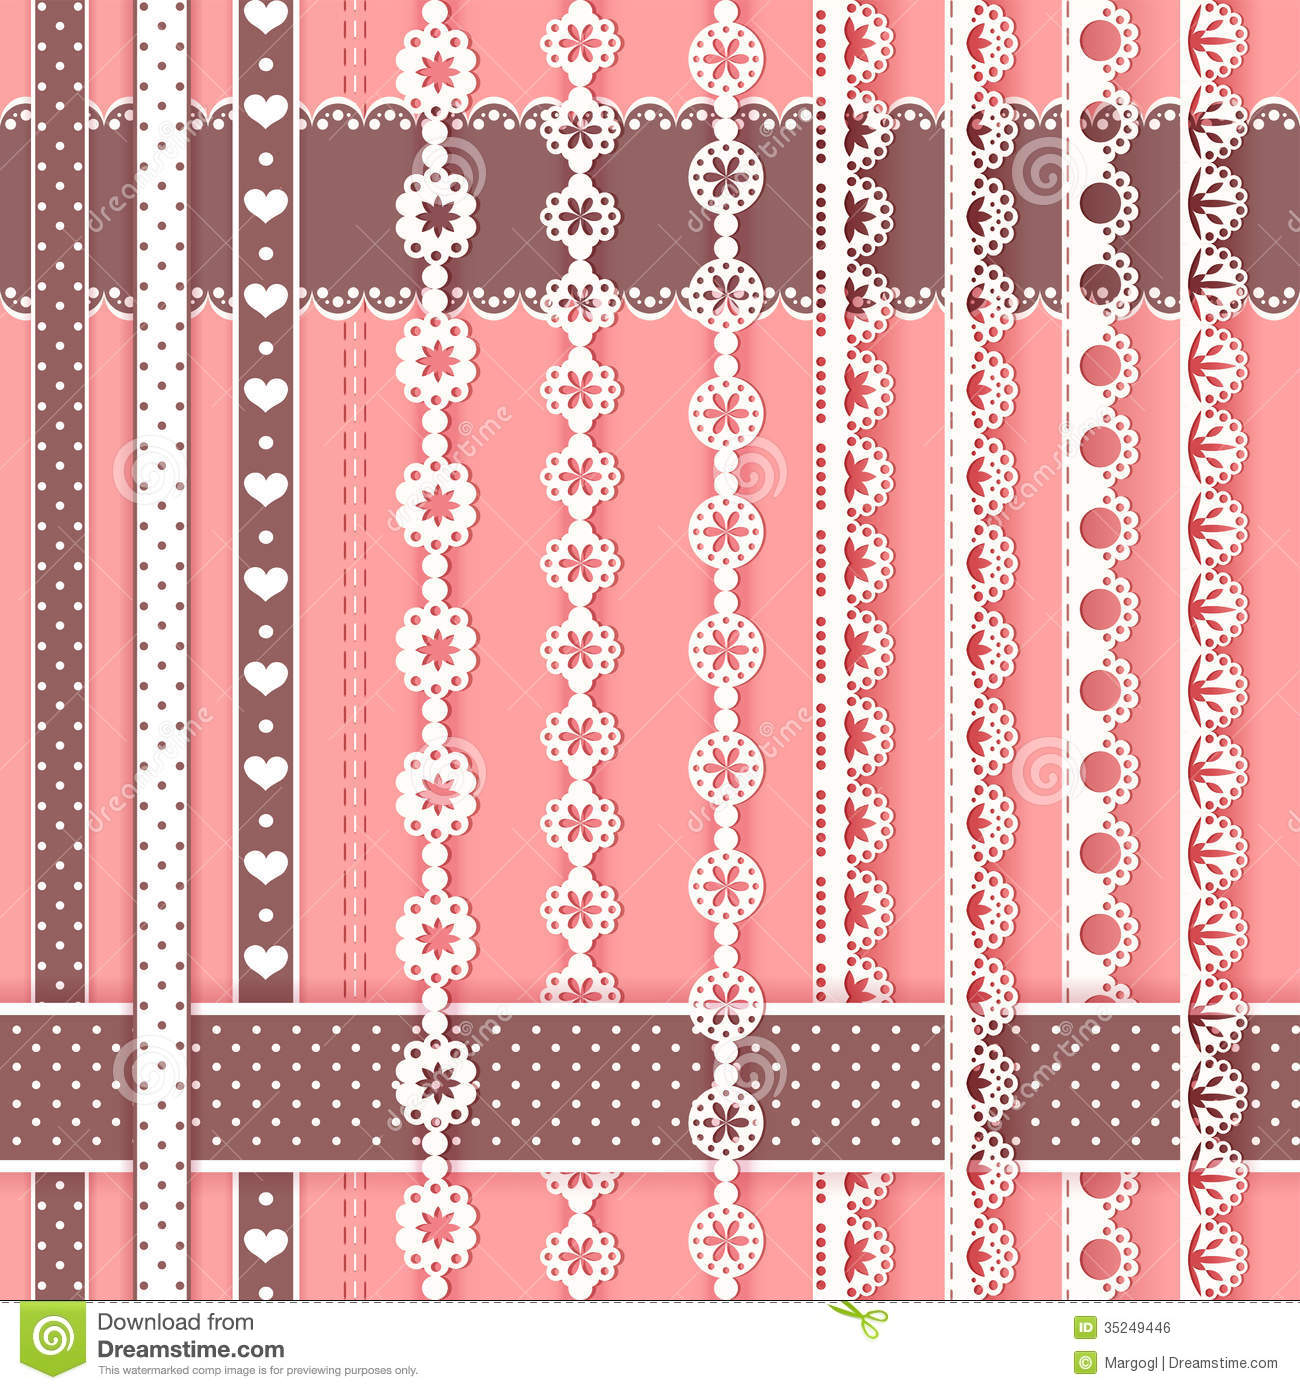 Collection For Scrapbook. Borders. Royalty Free Stock Image - Image: 35249446